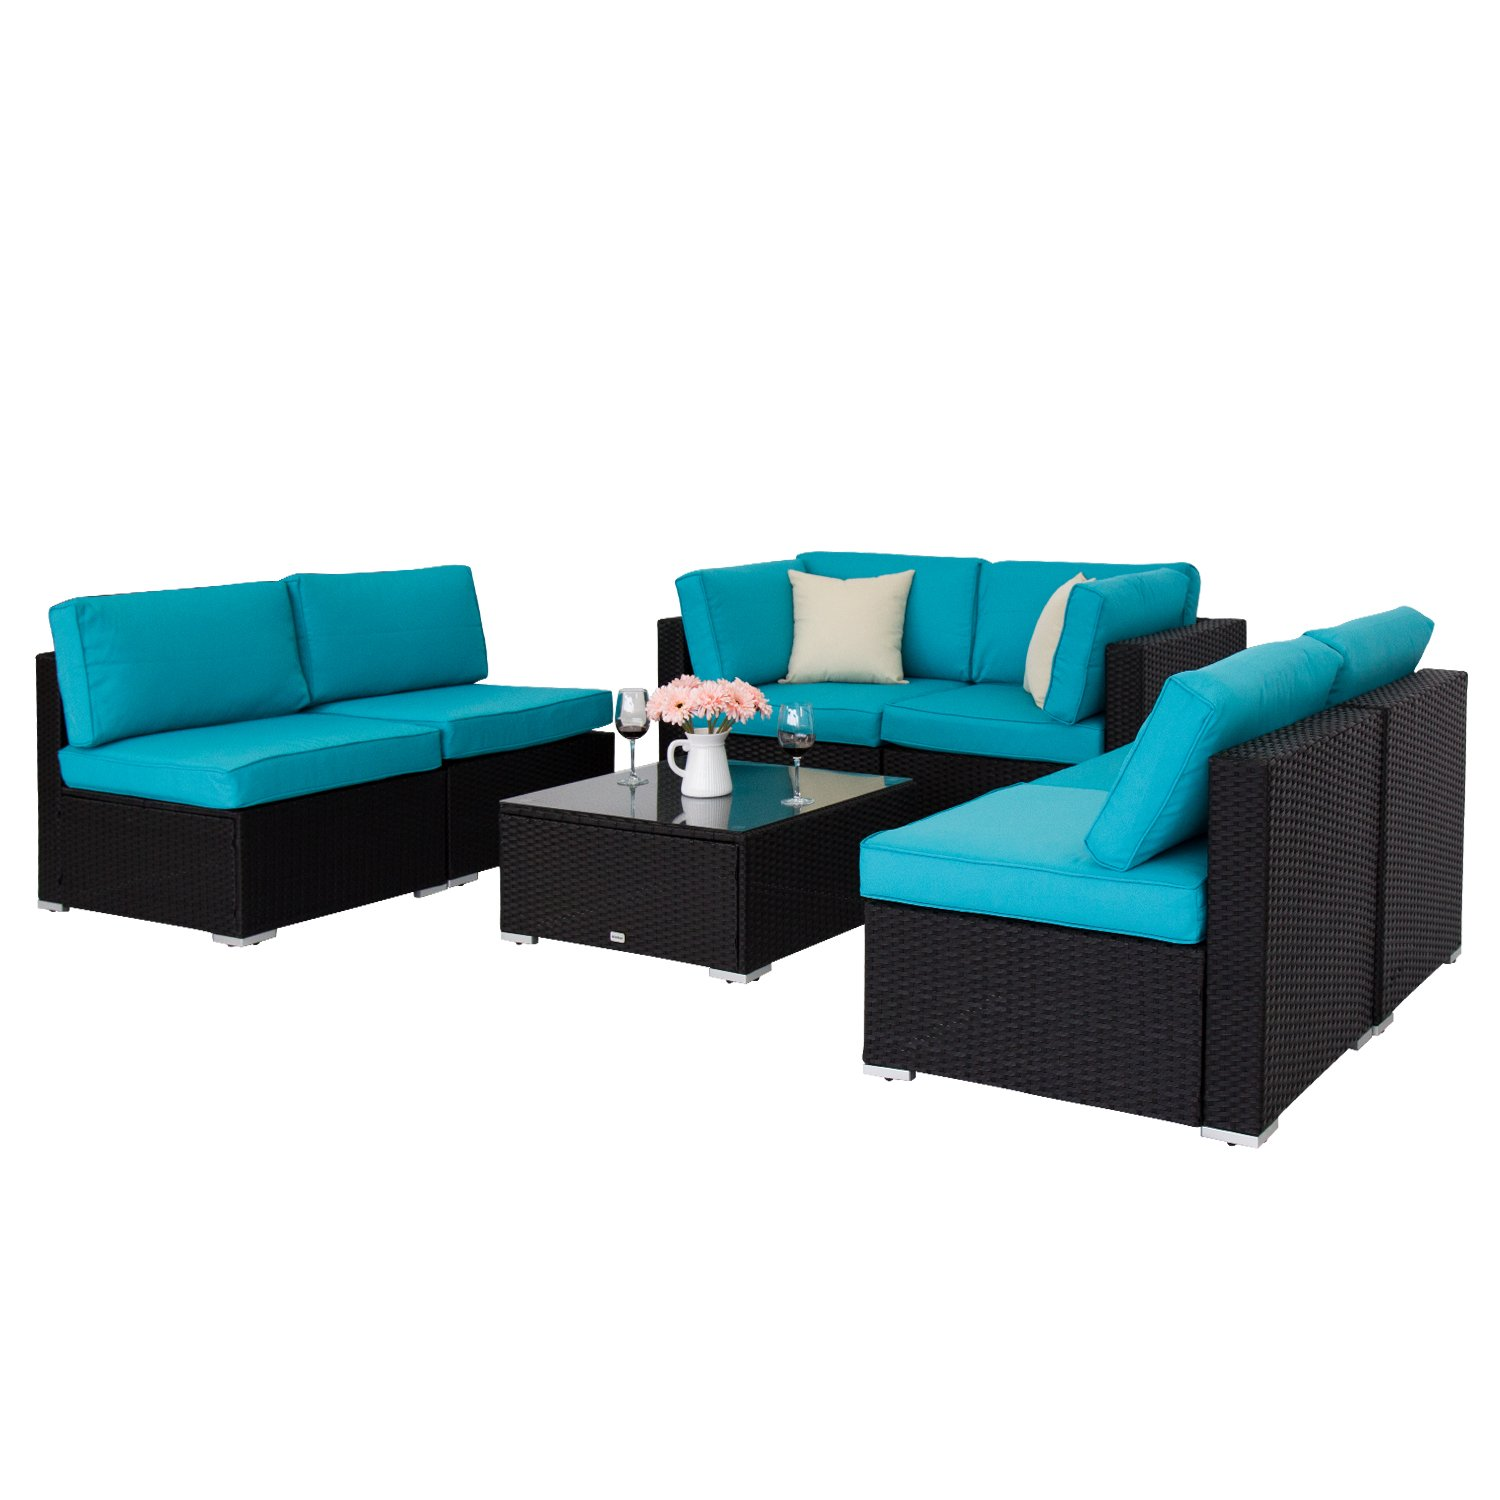 Peach Tree 7 PCs Outdoor Patio PE Rattan Wicker Sofa Sectional Furniture Set With 2 Pillows and Tea Table by Peachtree Press Inc (Image #5)